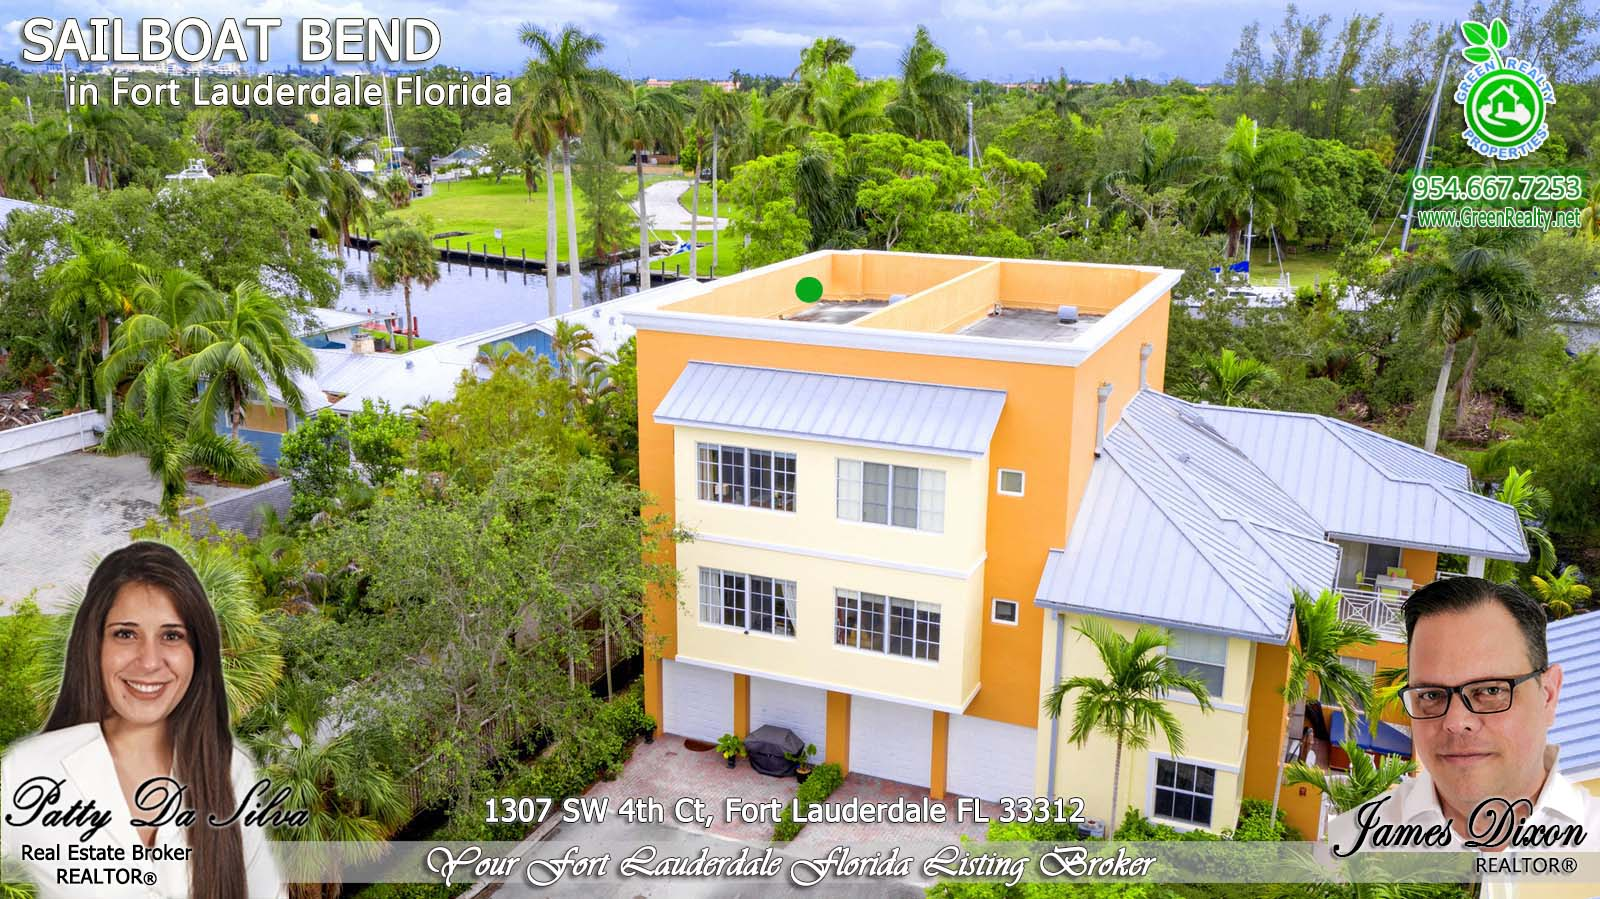 Sailboat Bend Fort Lauderdale Townhomes For Sale